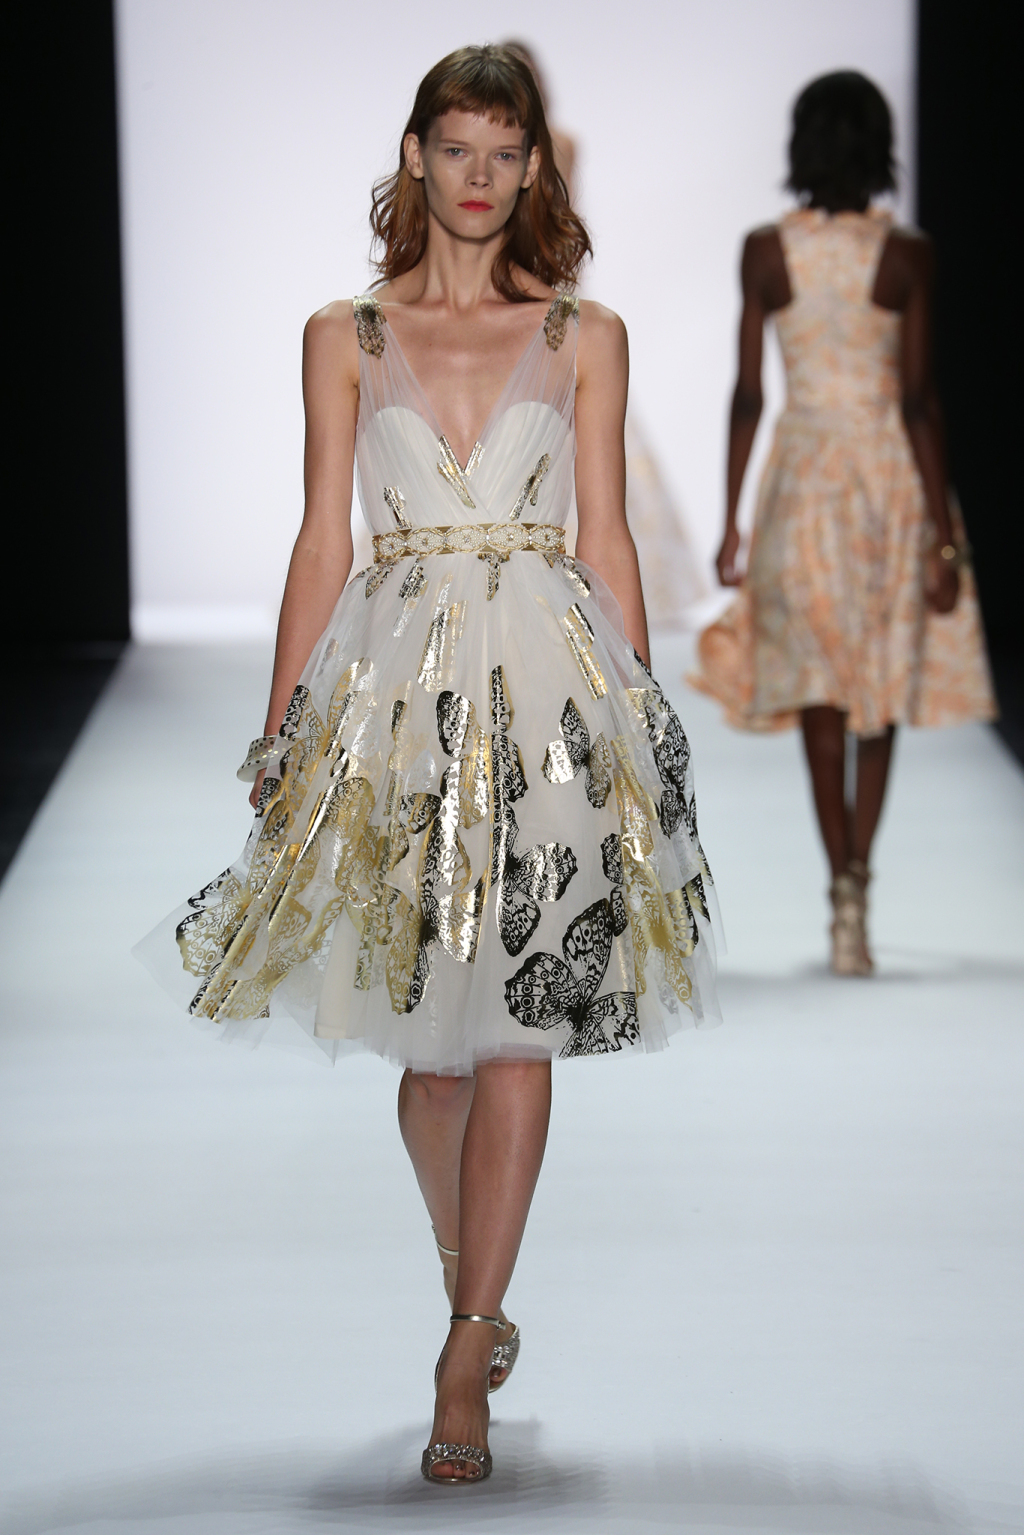 Lovely Floaty Ethereal Dresses With Foil Printed Gold And Silver Erflies For Badgley Mischka